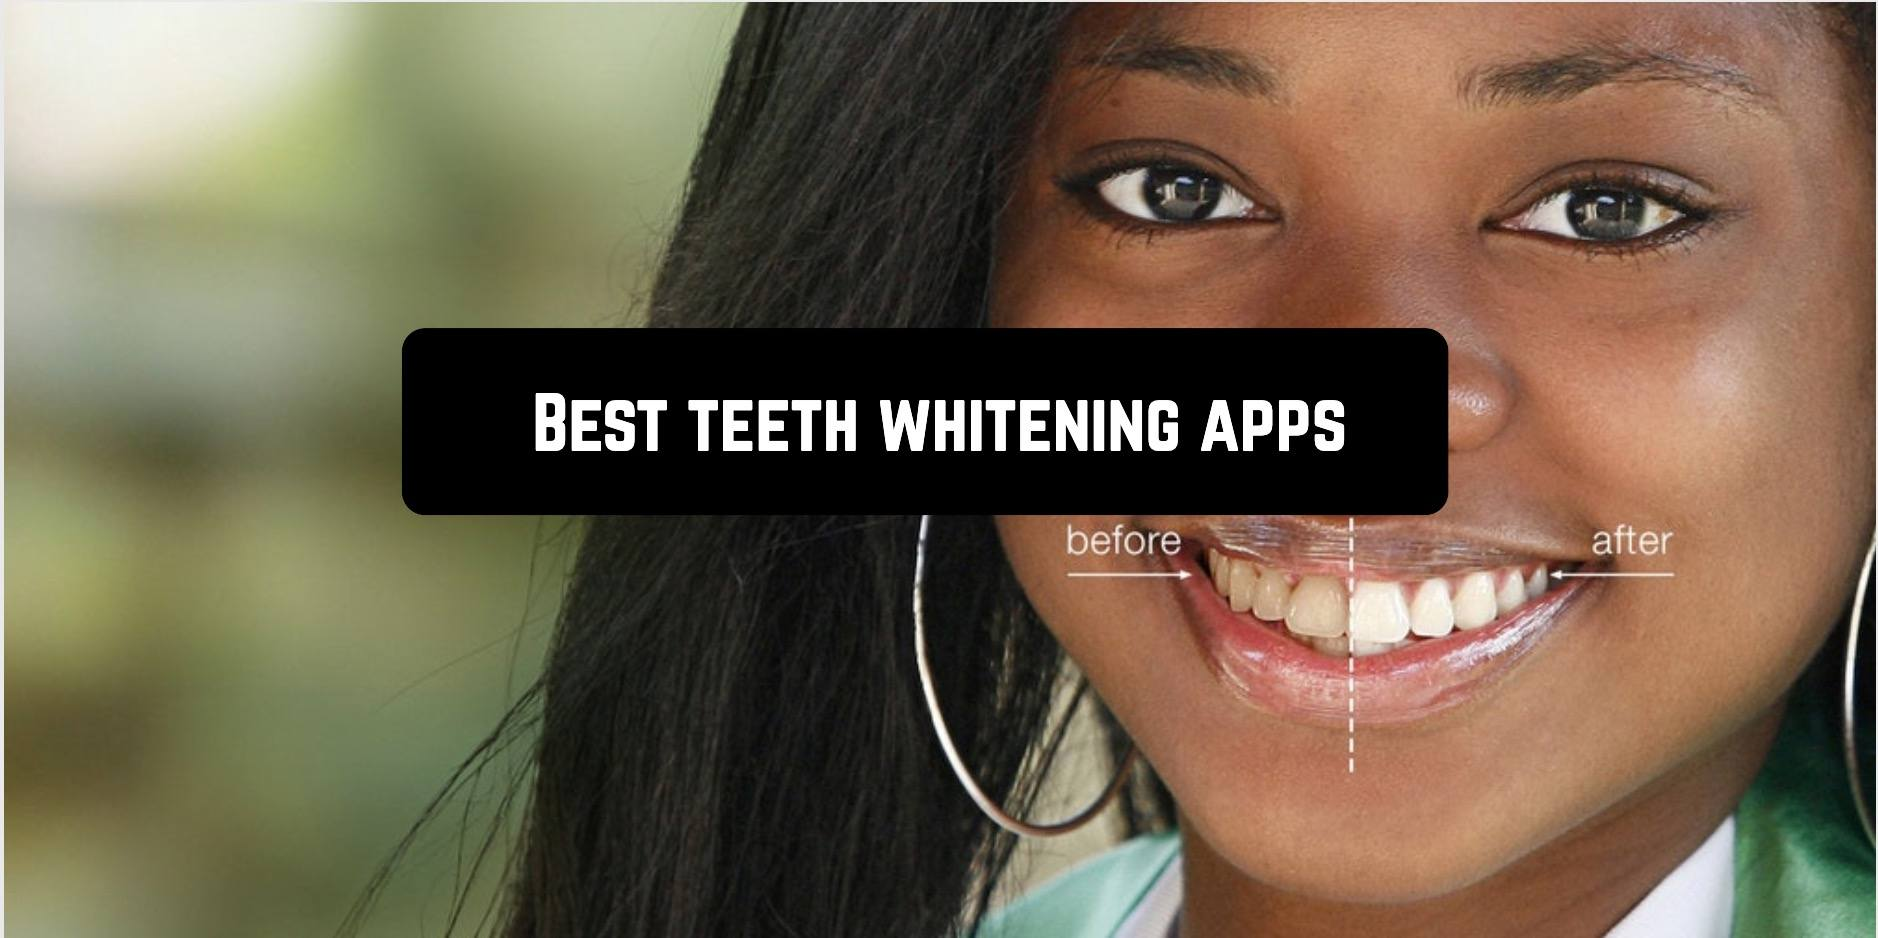 Best teeth whitening apps